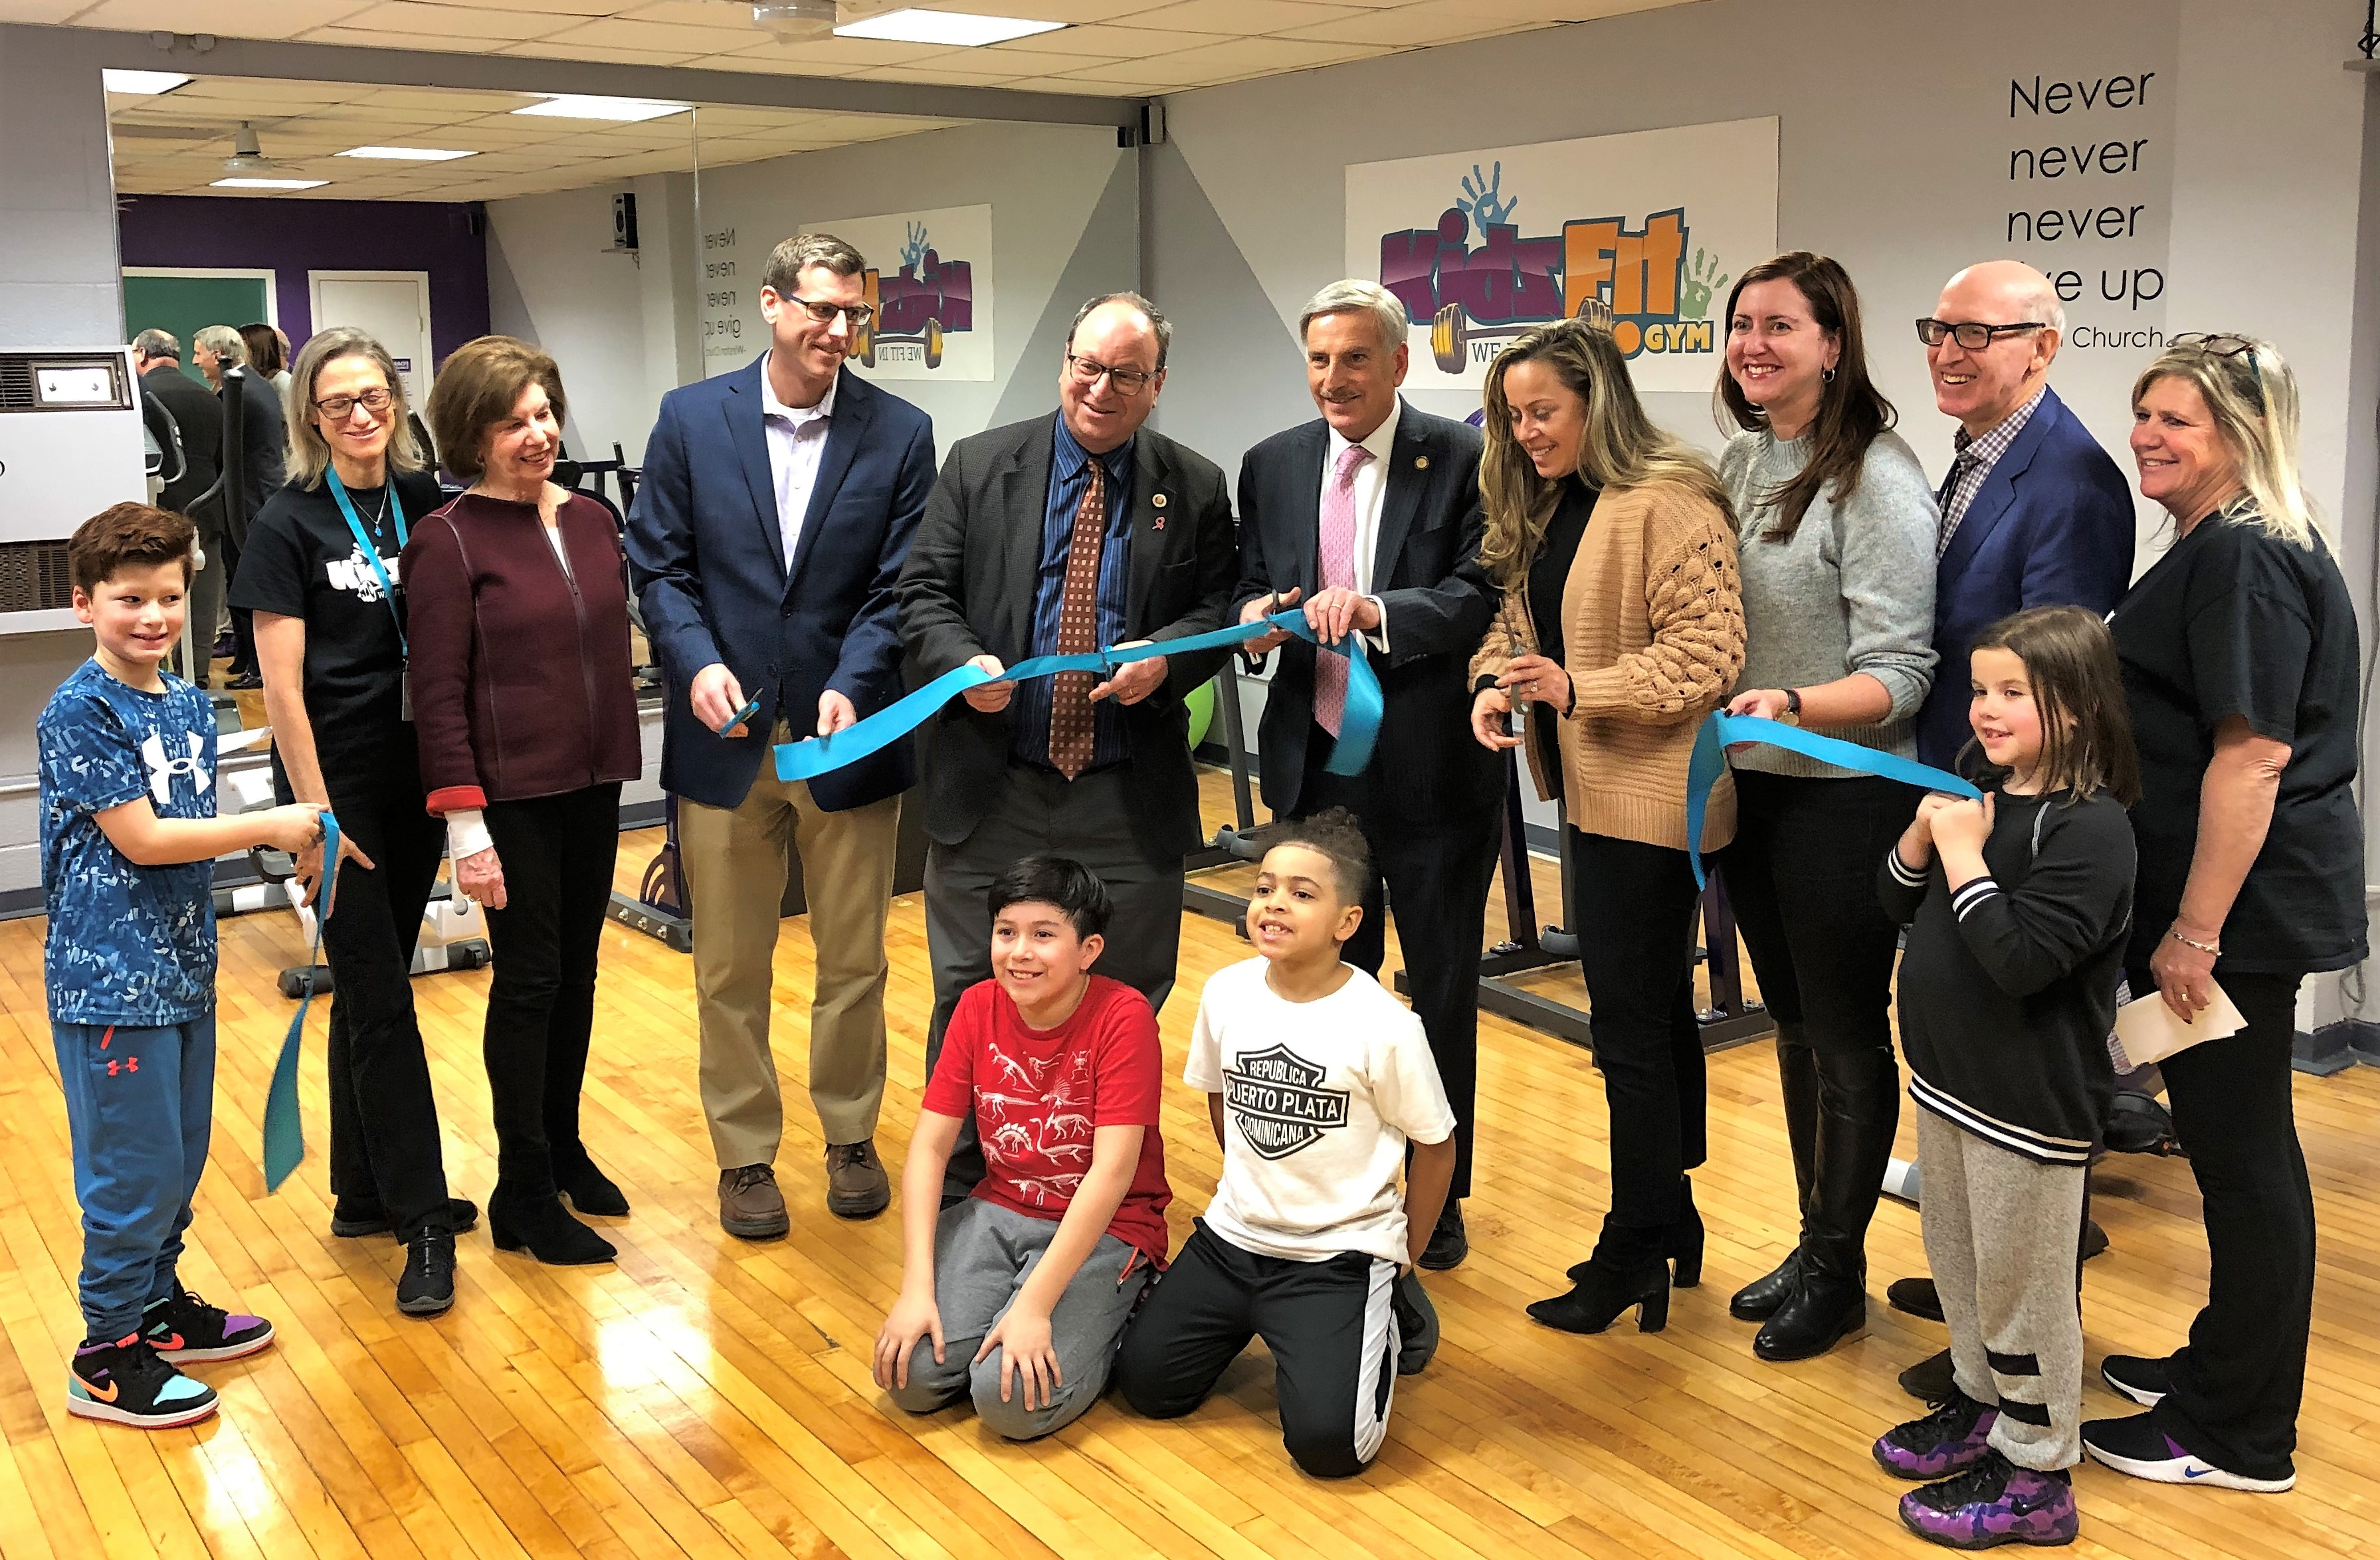 On December 12, 2019, Assemblyman Braunstein attended the ribbon cutting for a brand new Kidz Fit Gym at Commonpoint Queens Sam Field Center.